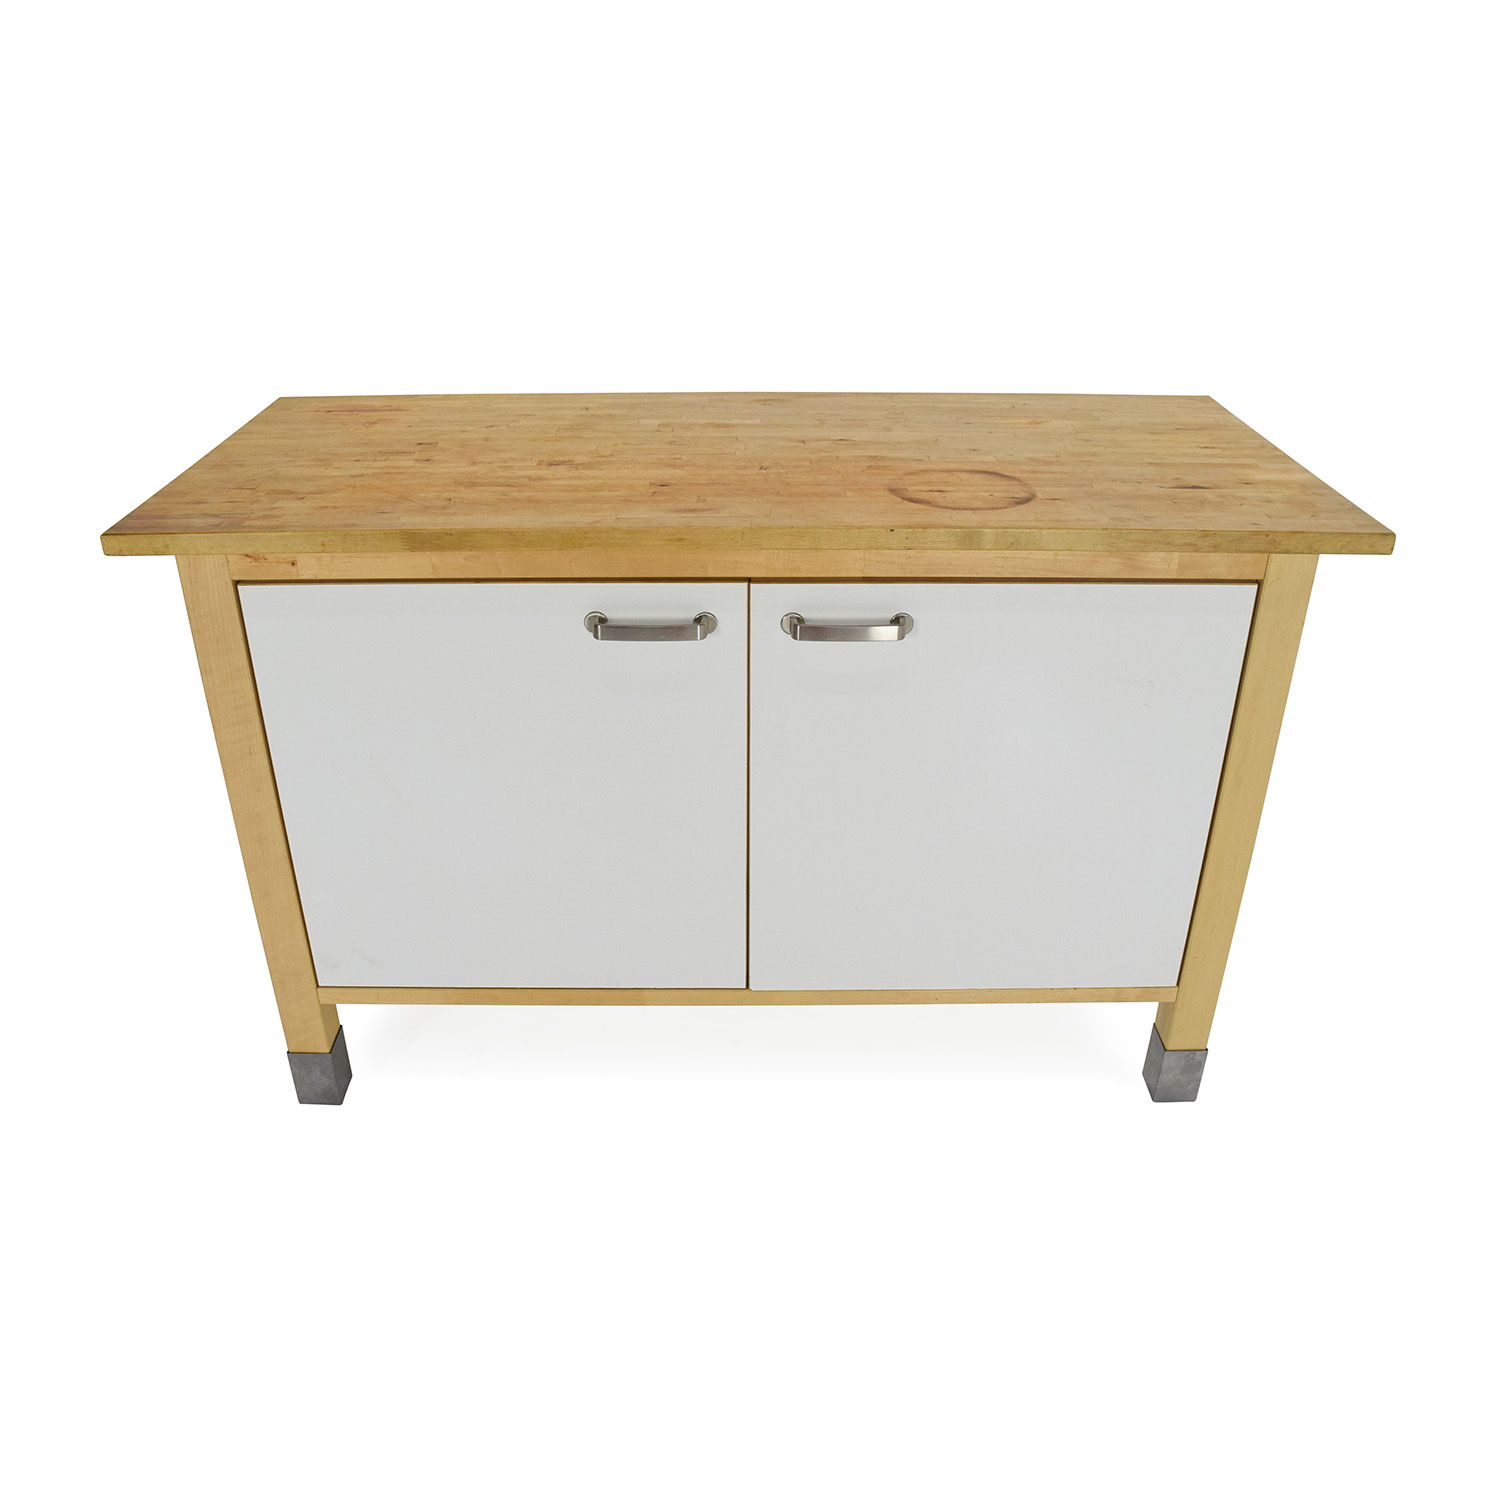 Kitchen Block Cabinet Table / Cabinets & Sideboards